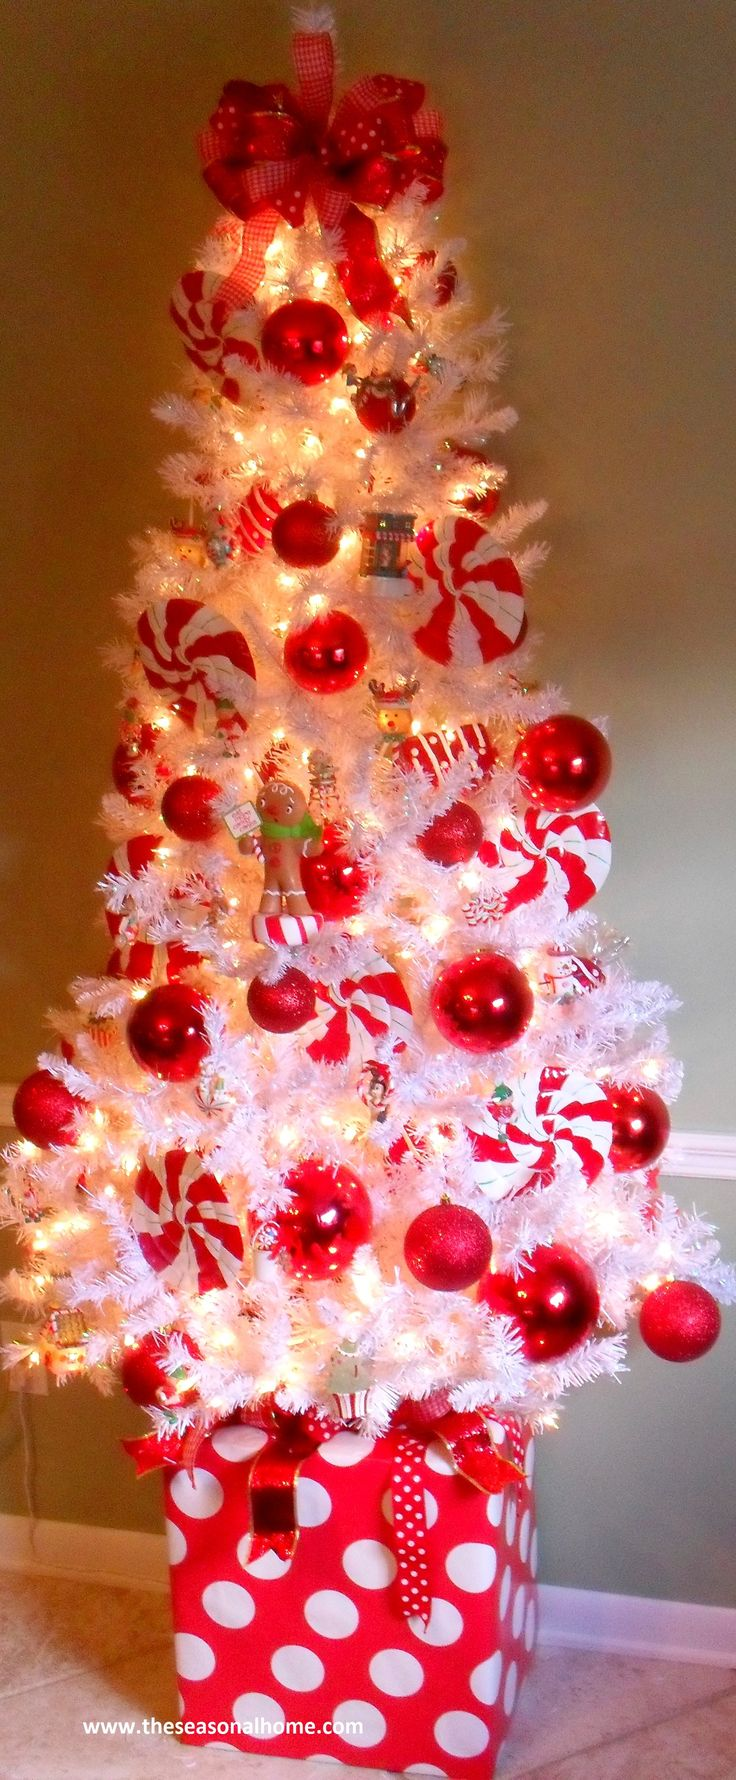 White christmas tree with red decorations - Find This Pin And More On Red And White Christmas